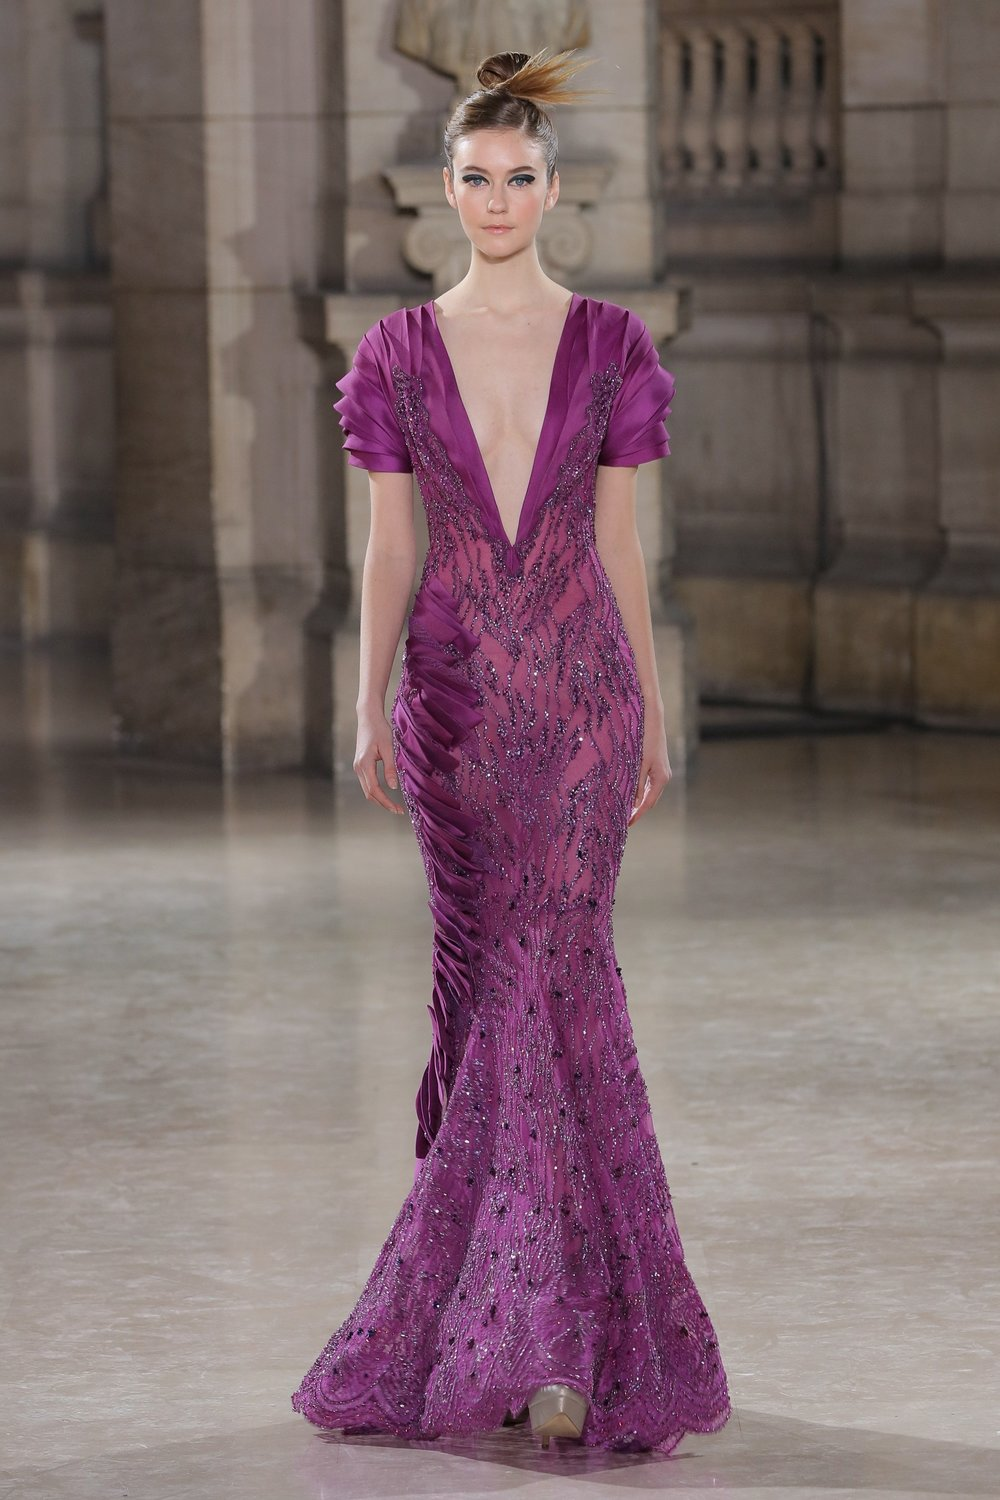 TONY_WARD_COUTURE_SS19_6.jpg